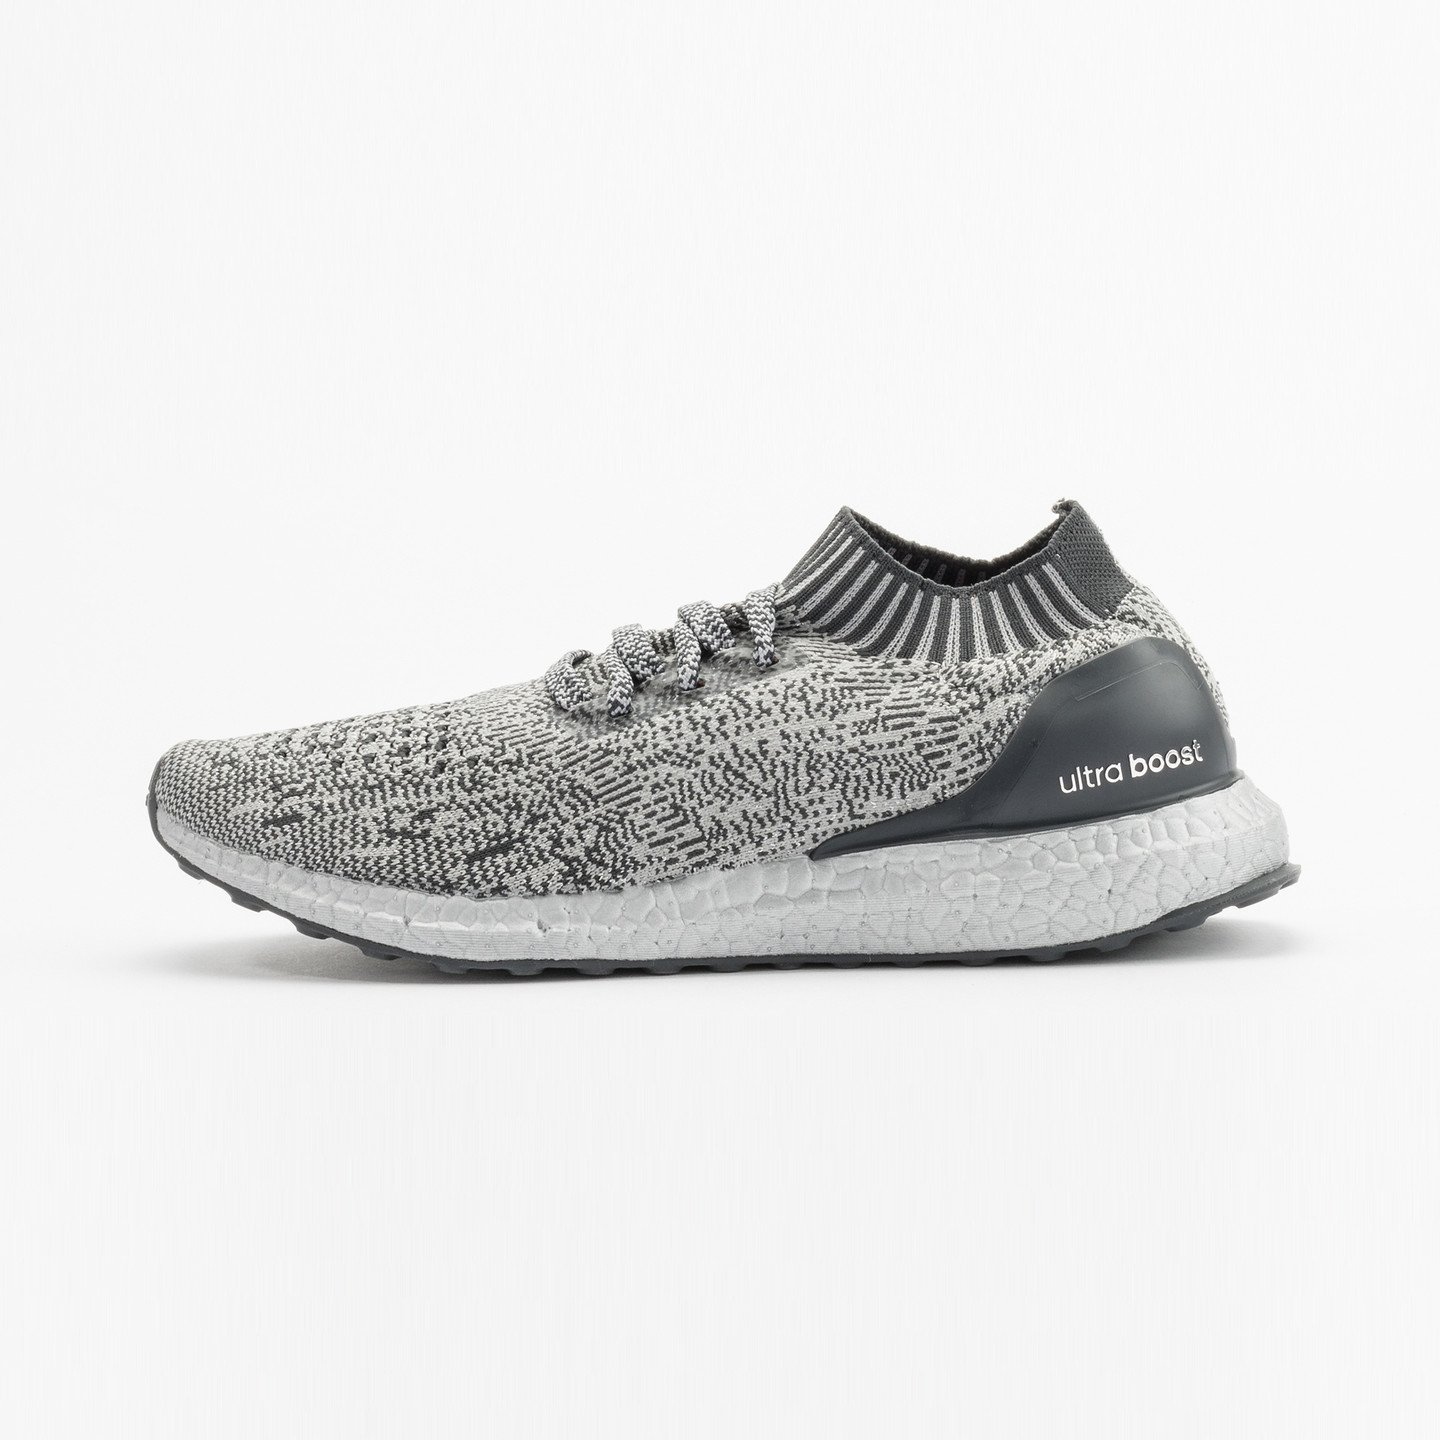 Adidas Ultra Boost Uncaged 'Super Bowl' Silver Grey BA7997-42.66